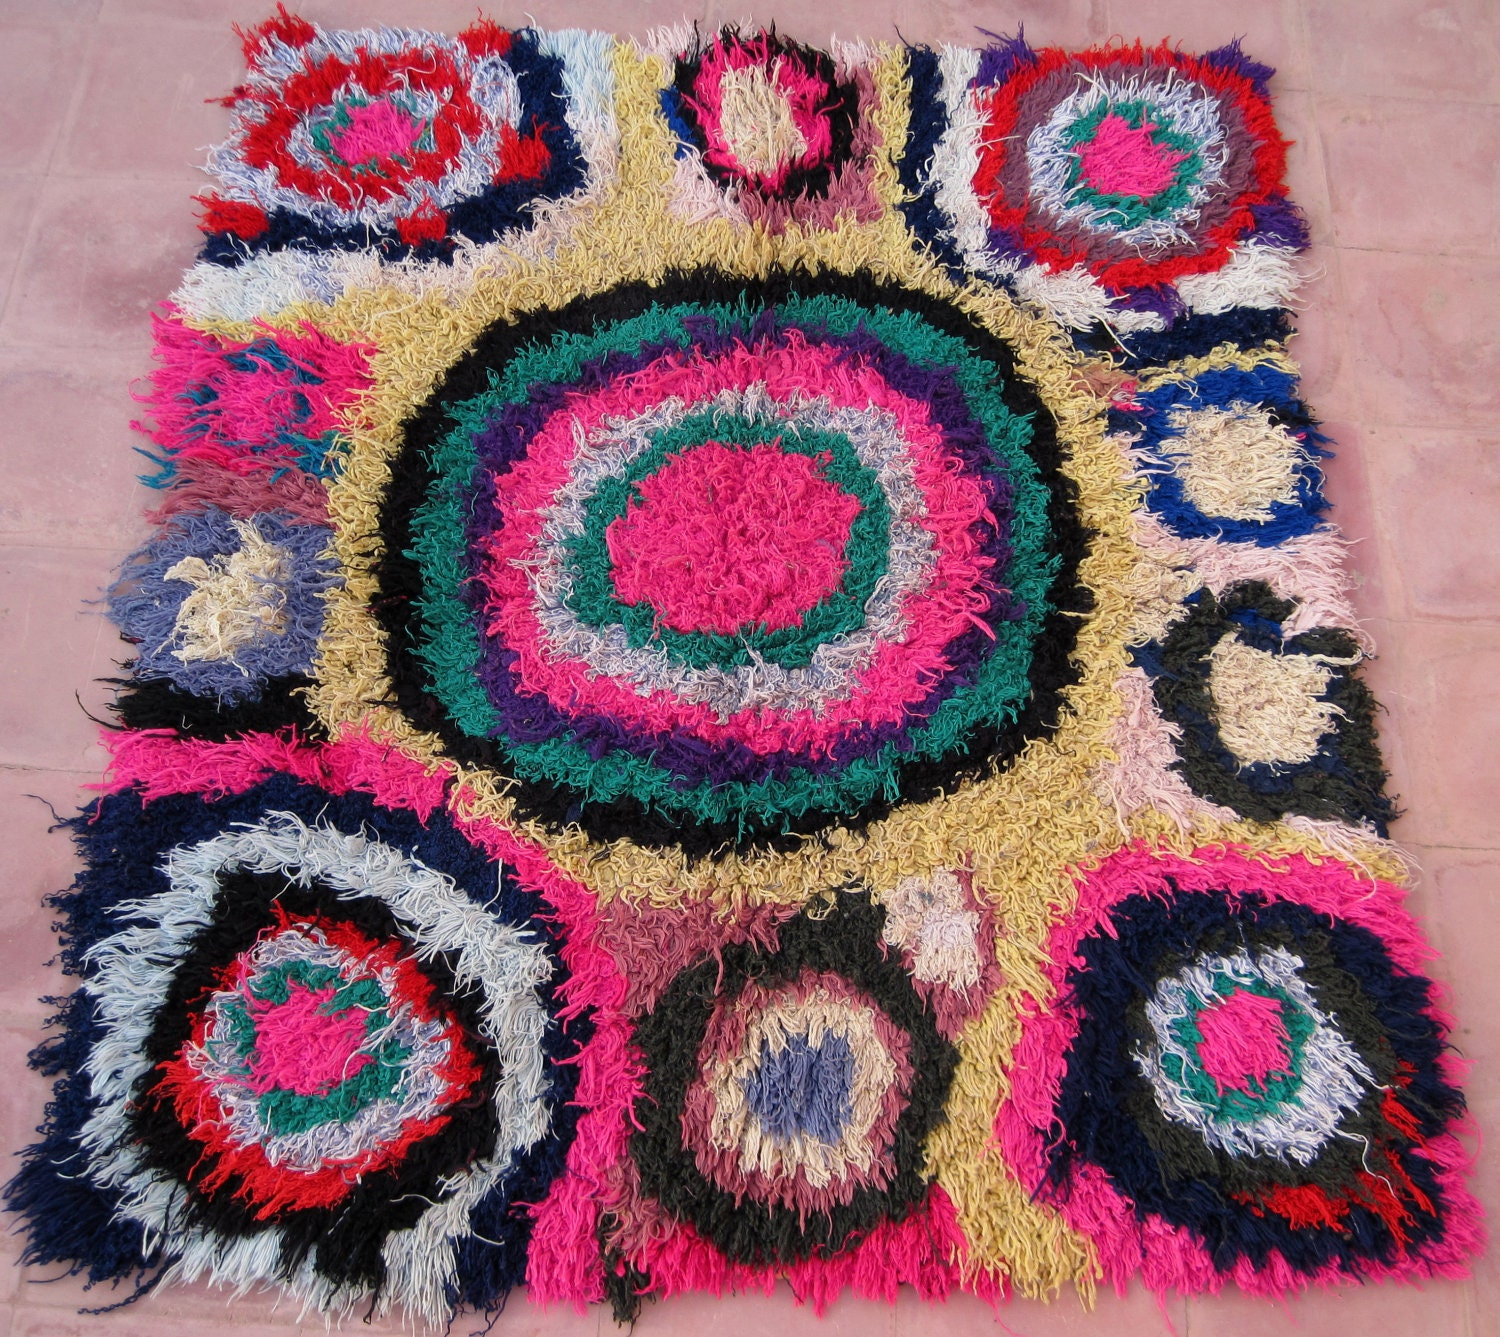 Vintage Moroccan Rug Woven By Hand From Scraps By